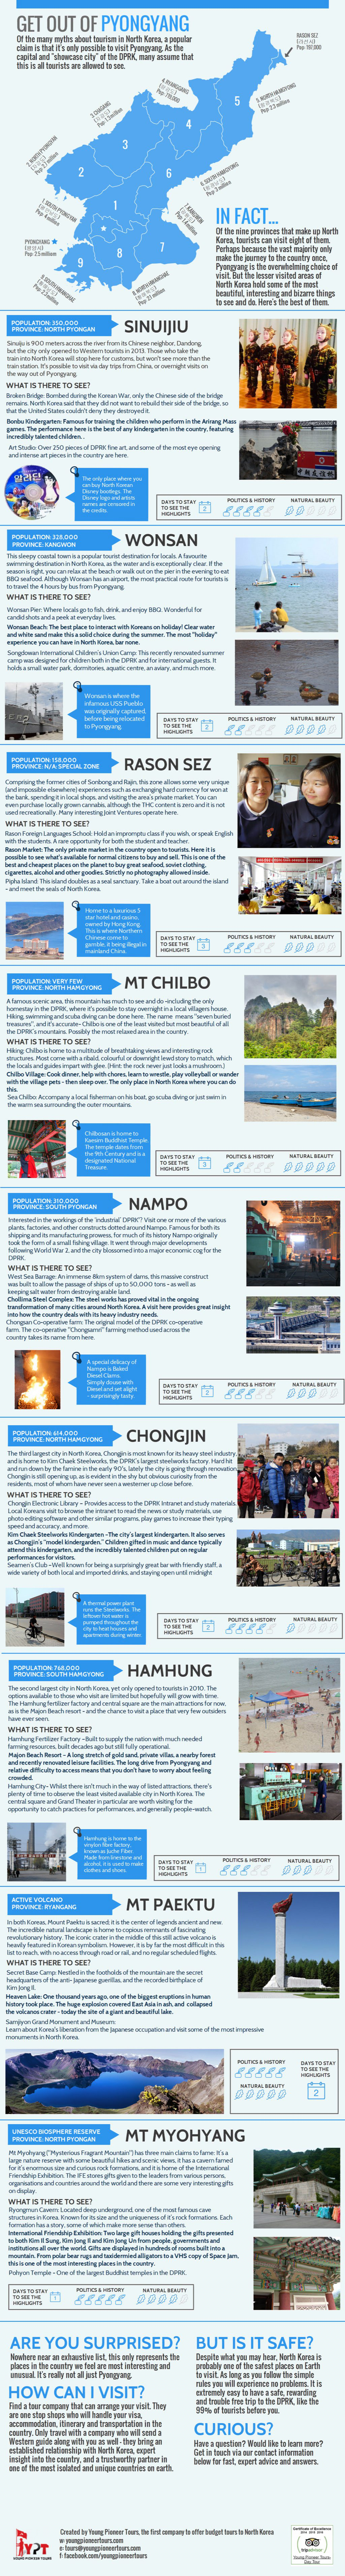 north korea facts infographic